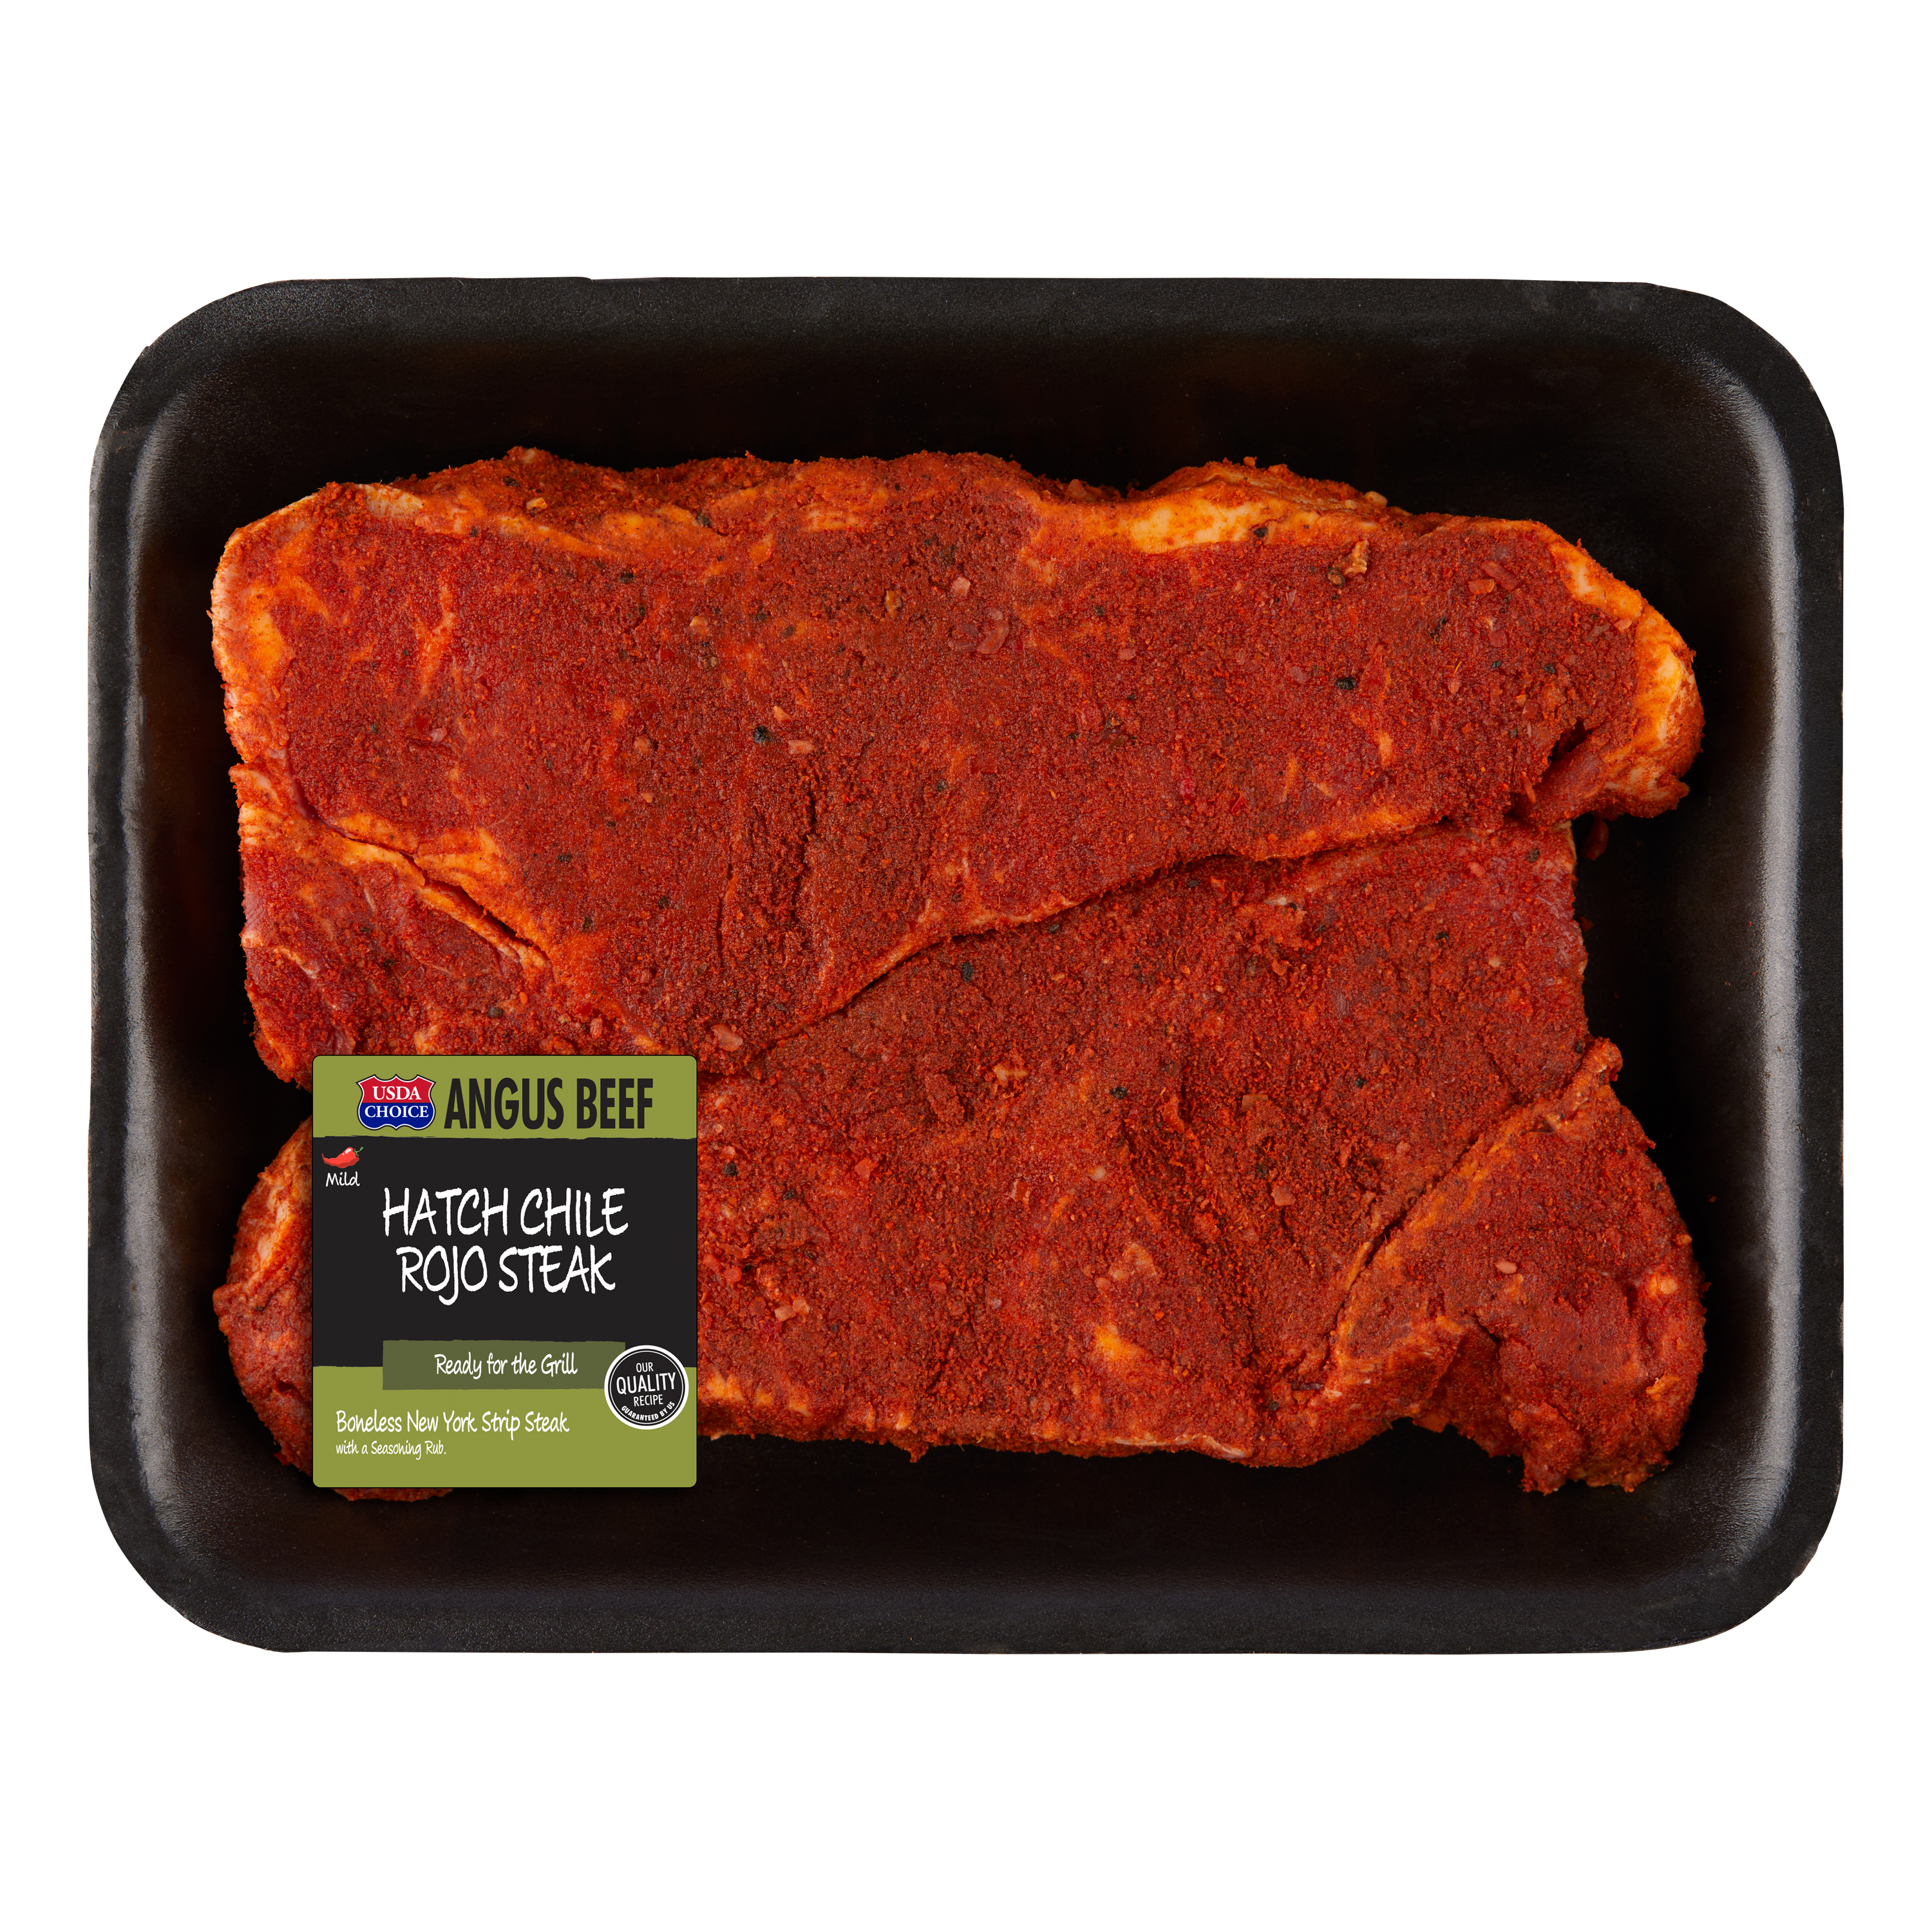 Beef Choice Angus New York Strip Steak with Hatch Chili Seasoning 0.5-1.5 lb